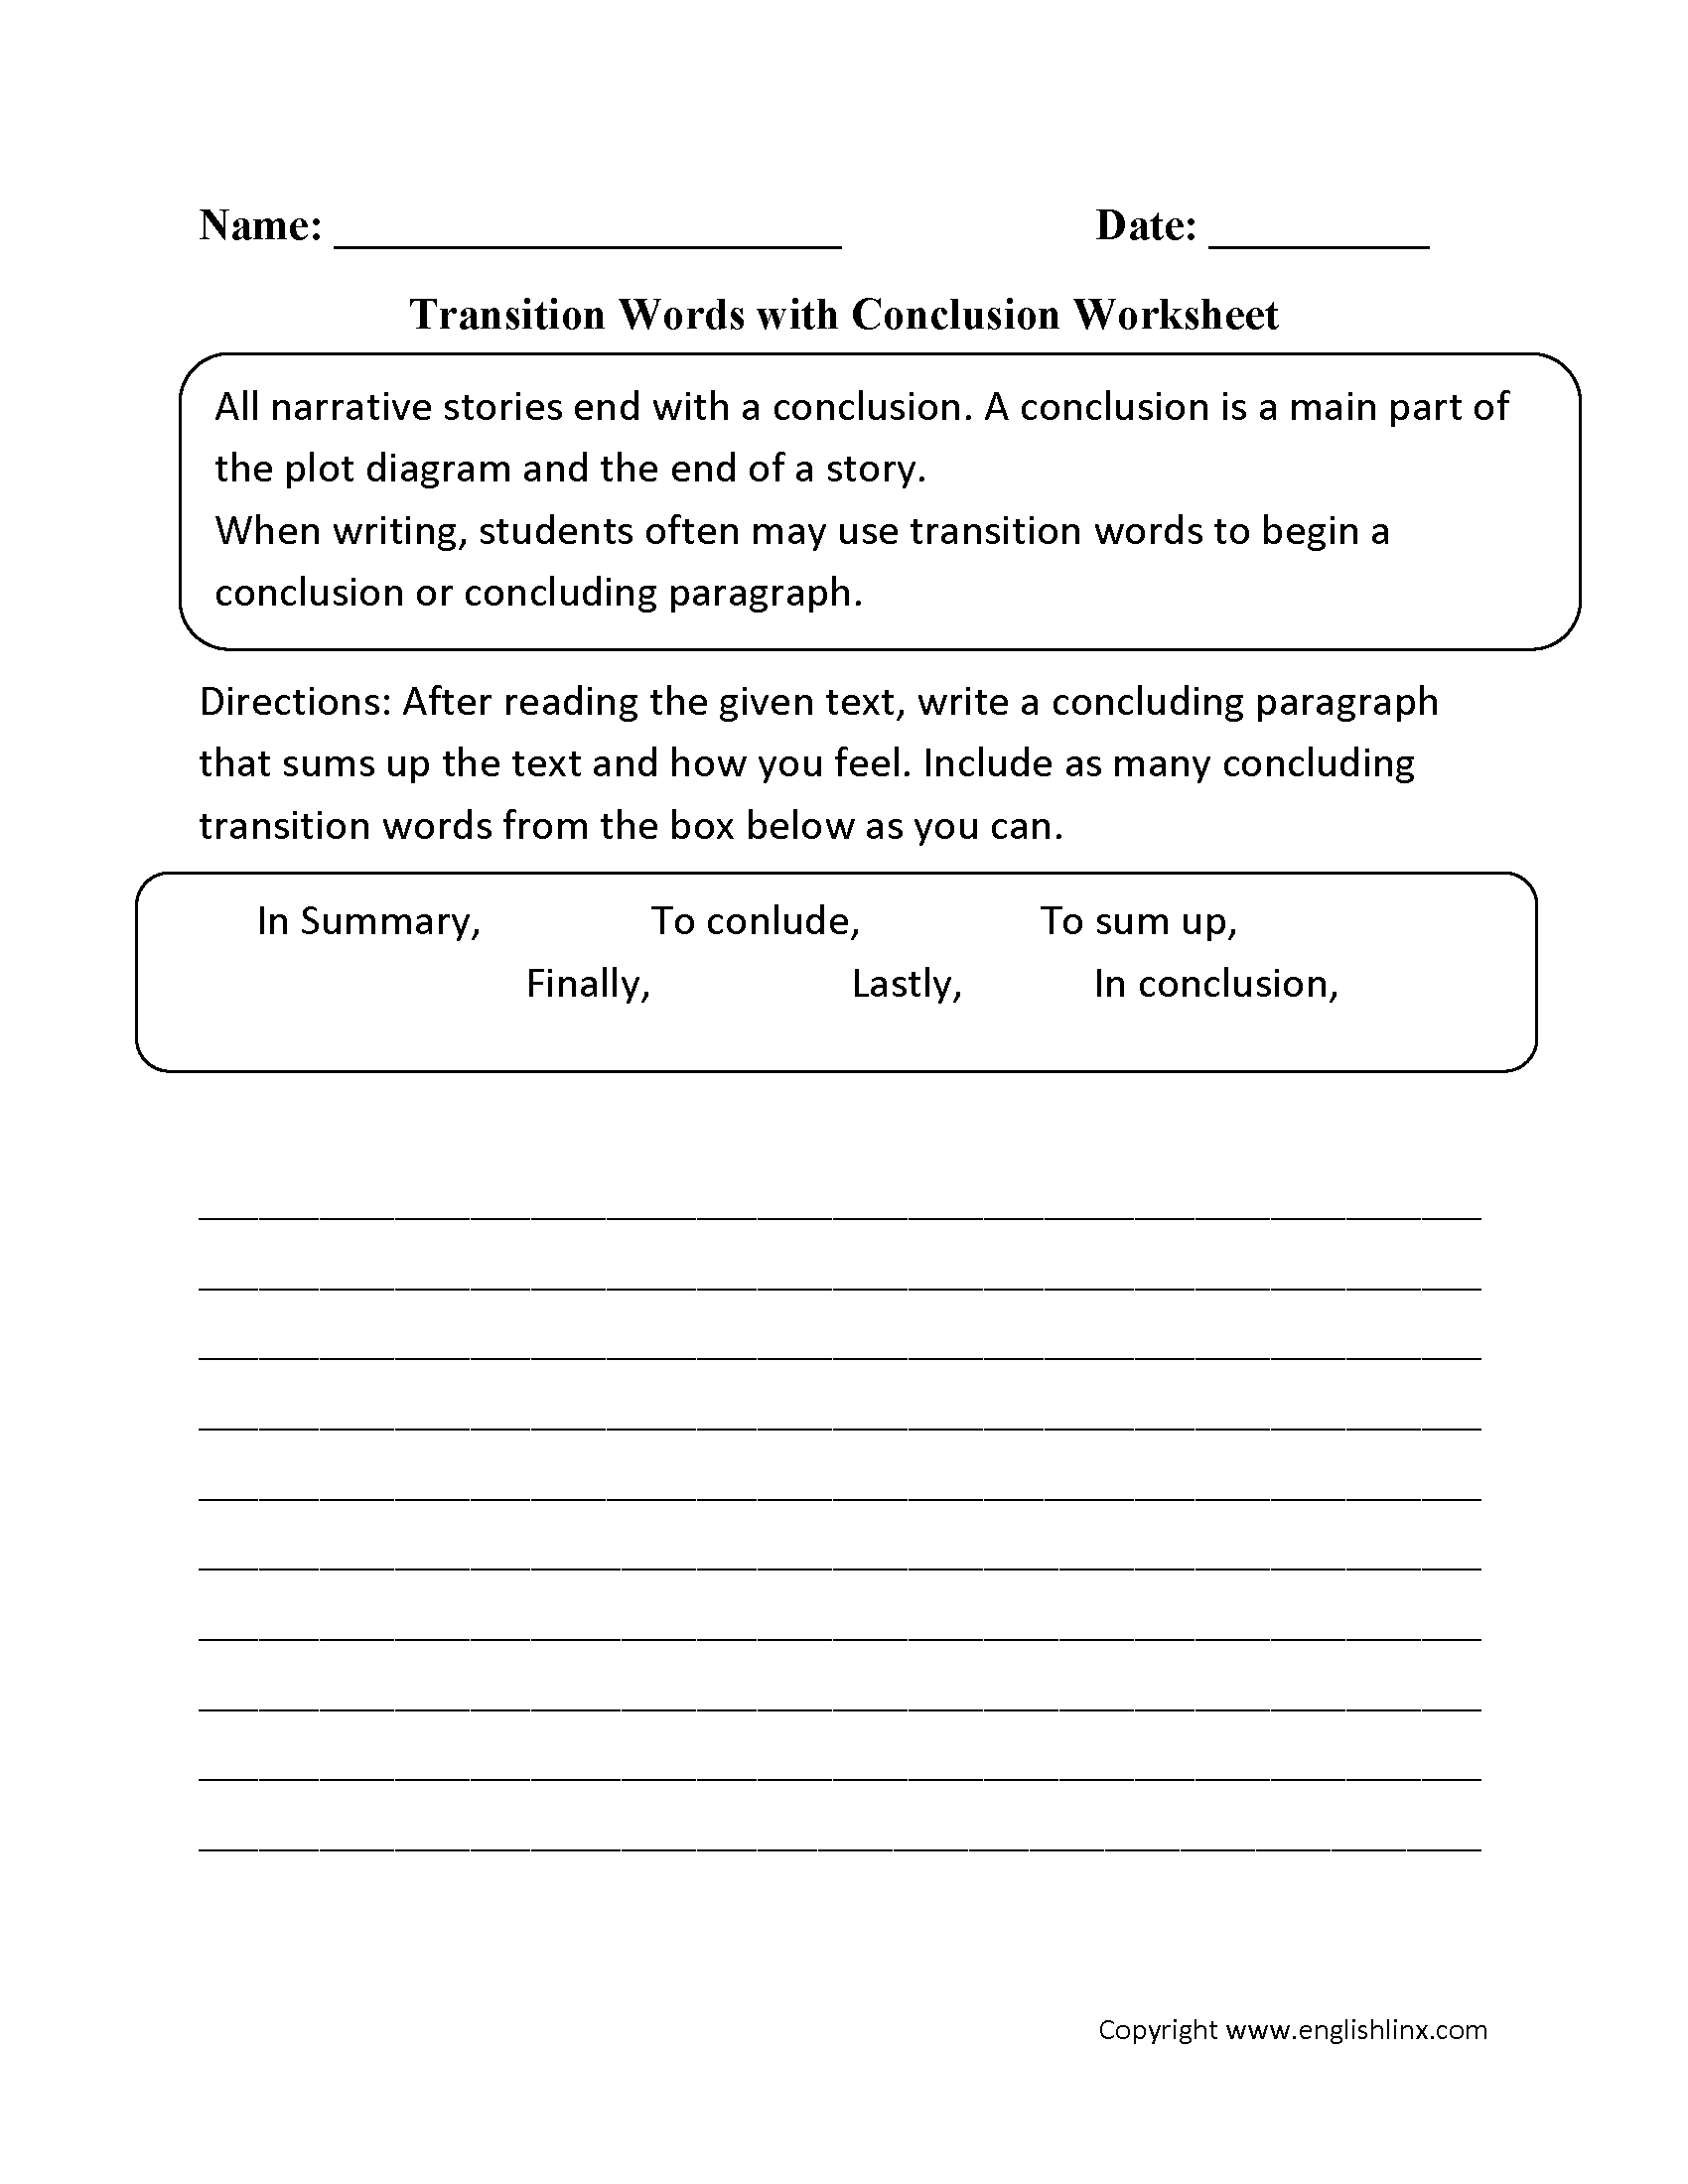 12 Best Images Of Drawing Conclusions Worksheets 1st Grade